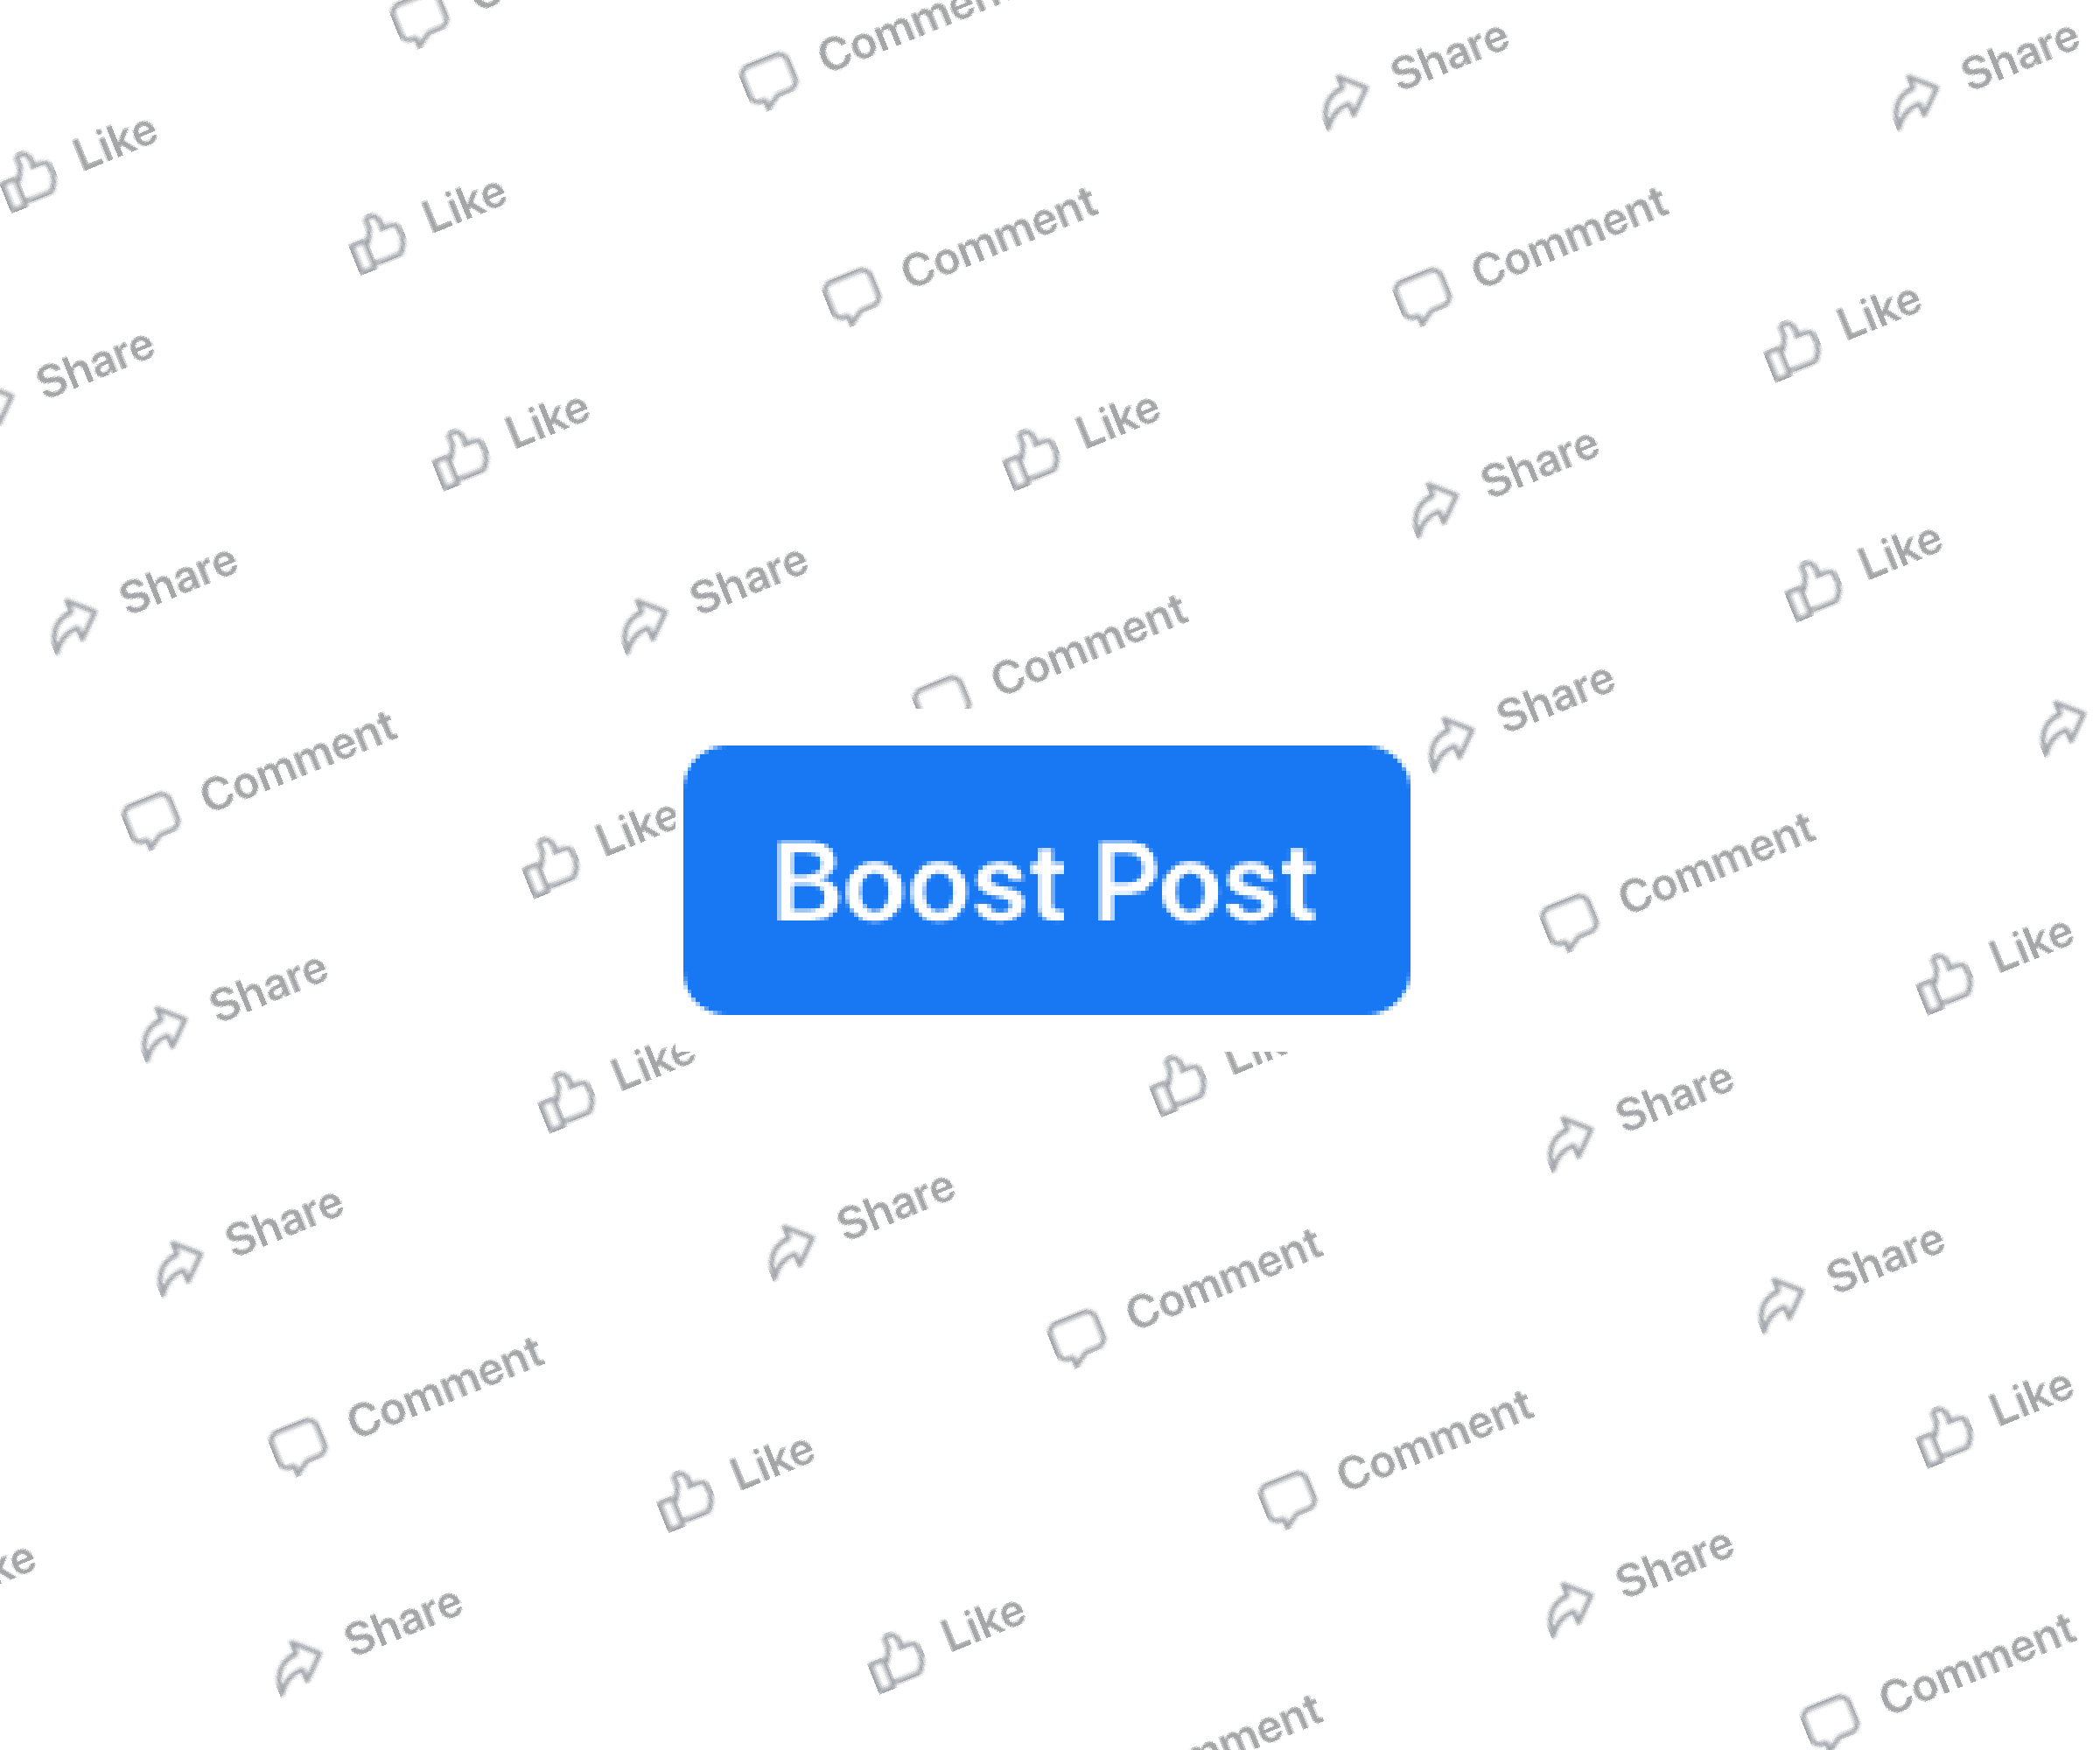 Step-by-Step Guide to Boosting Facebook and Instagram Posts